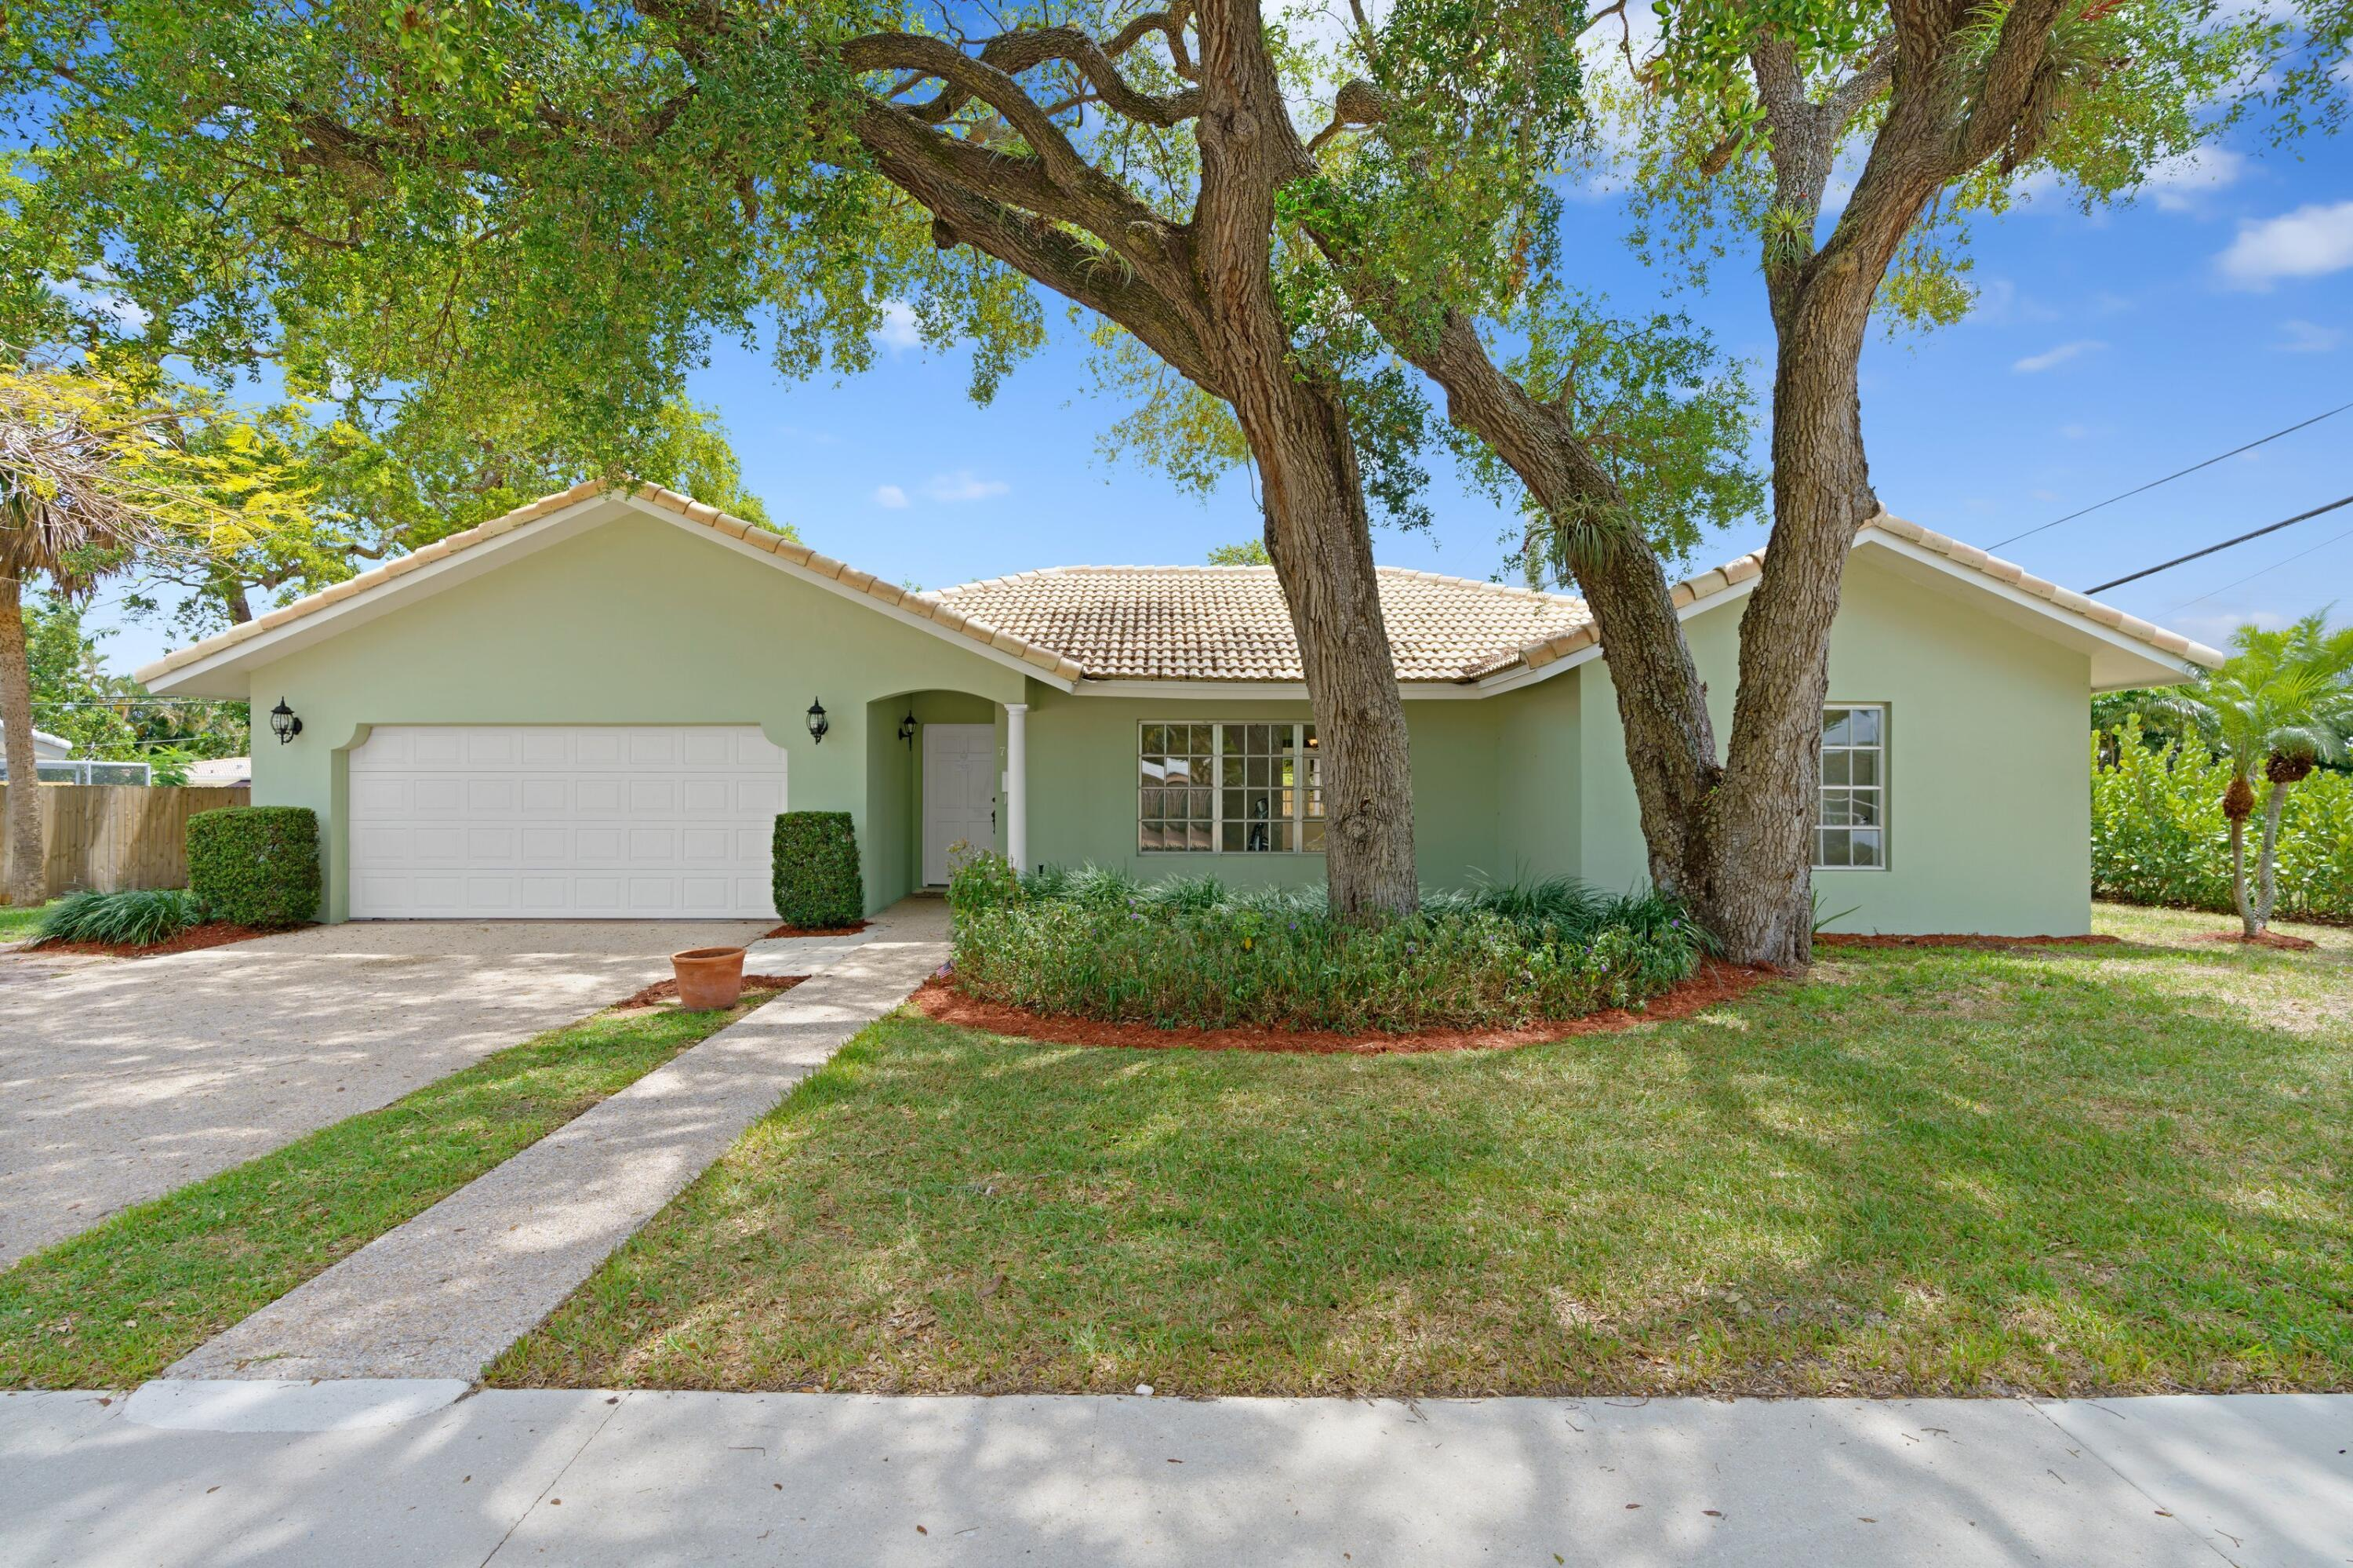 WOW! RARE ONE-STORY 5 BEDROOM HOME BOCA RATON SQUARE IN ADDISON MIZNER SCHOOL DISTRICT! Open House Sat & Sun, May 8 & 9 1-3 PM. No HOA! Bright Open Floor Plan, 5 BA, 2 1/2 BA, 2 GA. Huge Tropical Backyard with New Fence, Pool & Open Patio! French Doors Open to Sunroom. Stunning Kitchen, Granite Countertops, Custom Built Wood Cabinets, Stainless Steel Appliances. Serving Bar, & Recessed Lighting. Formal Dining Room. Extra Large Master Bedroom, Walk-In Closets, Tile Floors. Jacuzzi Bath Tub! Tons of Closet Space! New Carpets! Roof 2018. Pool Heater 2017. A/C 2019. Painted Interior & Exterior 2021. New Whole House Generator. Updated Electric Panel. New Light Fixtures & Fans Throughout.  Bike to Beach! Minutes to FAU, Downtown Mizner Park, Atlantic Ave & so much more!